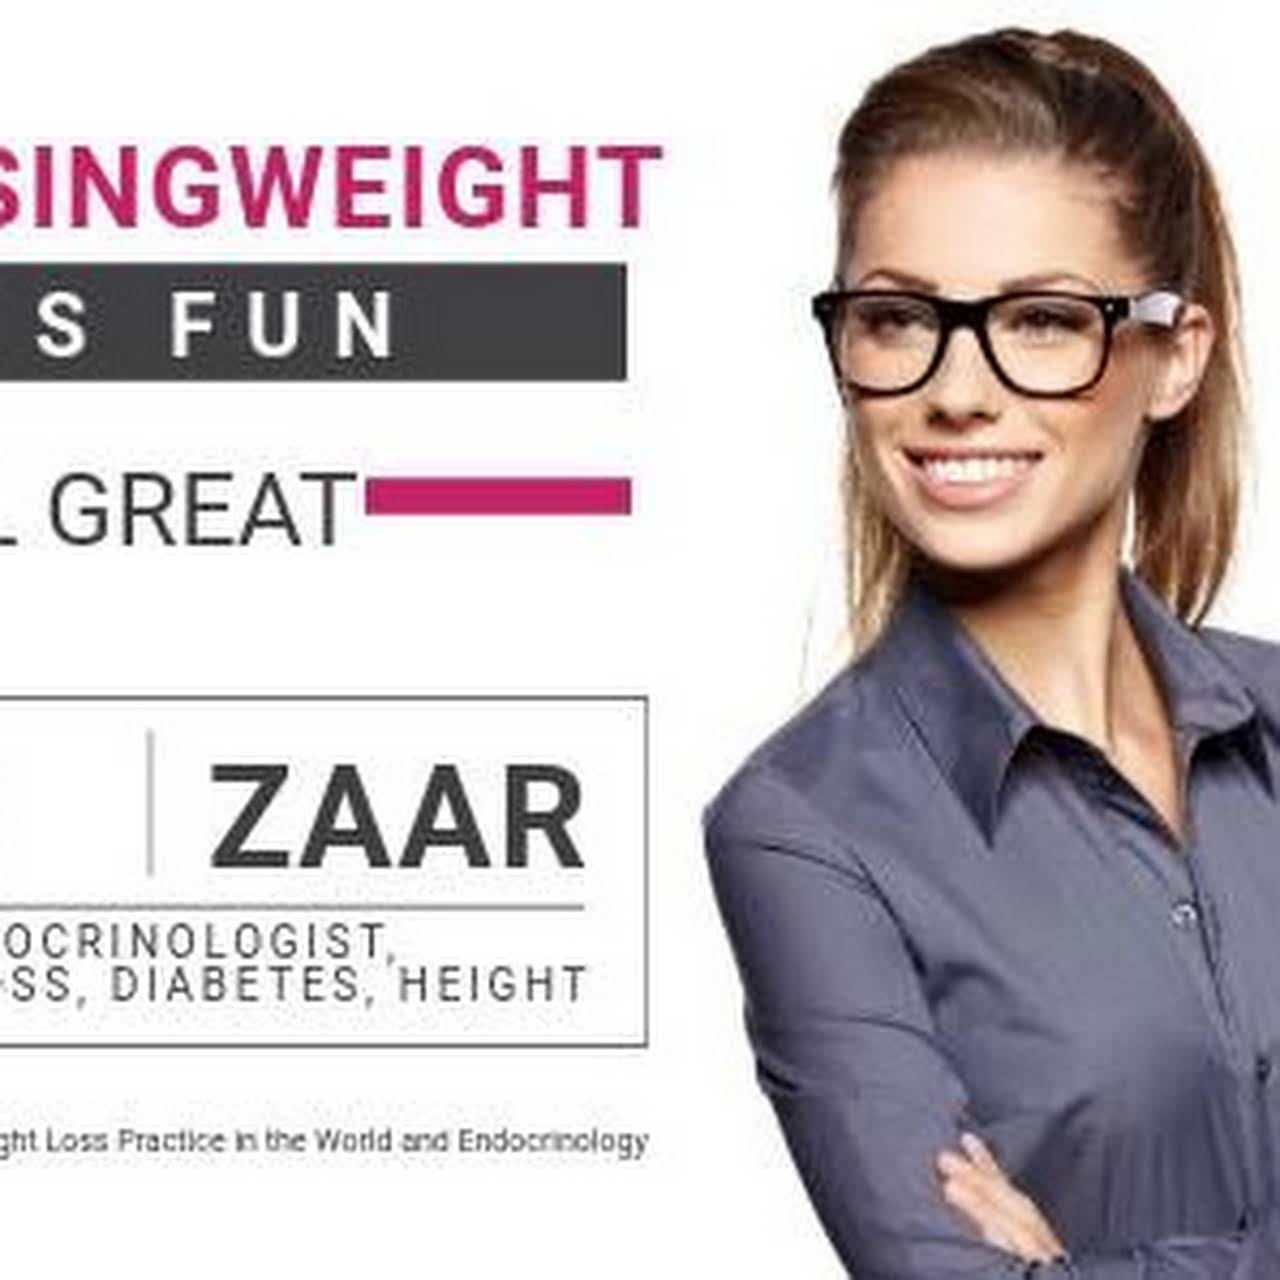 Endocrinologist In Lahore - How to Lose Weight with Dr Zaar - Weight